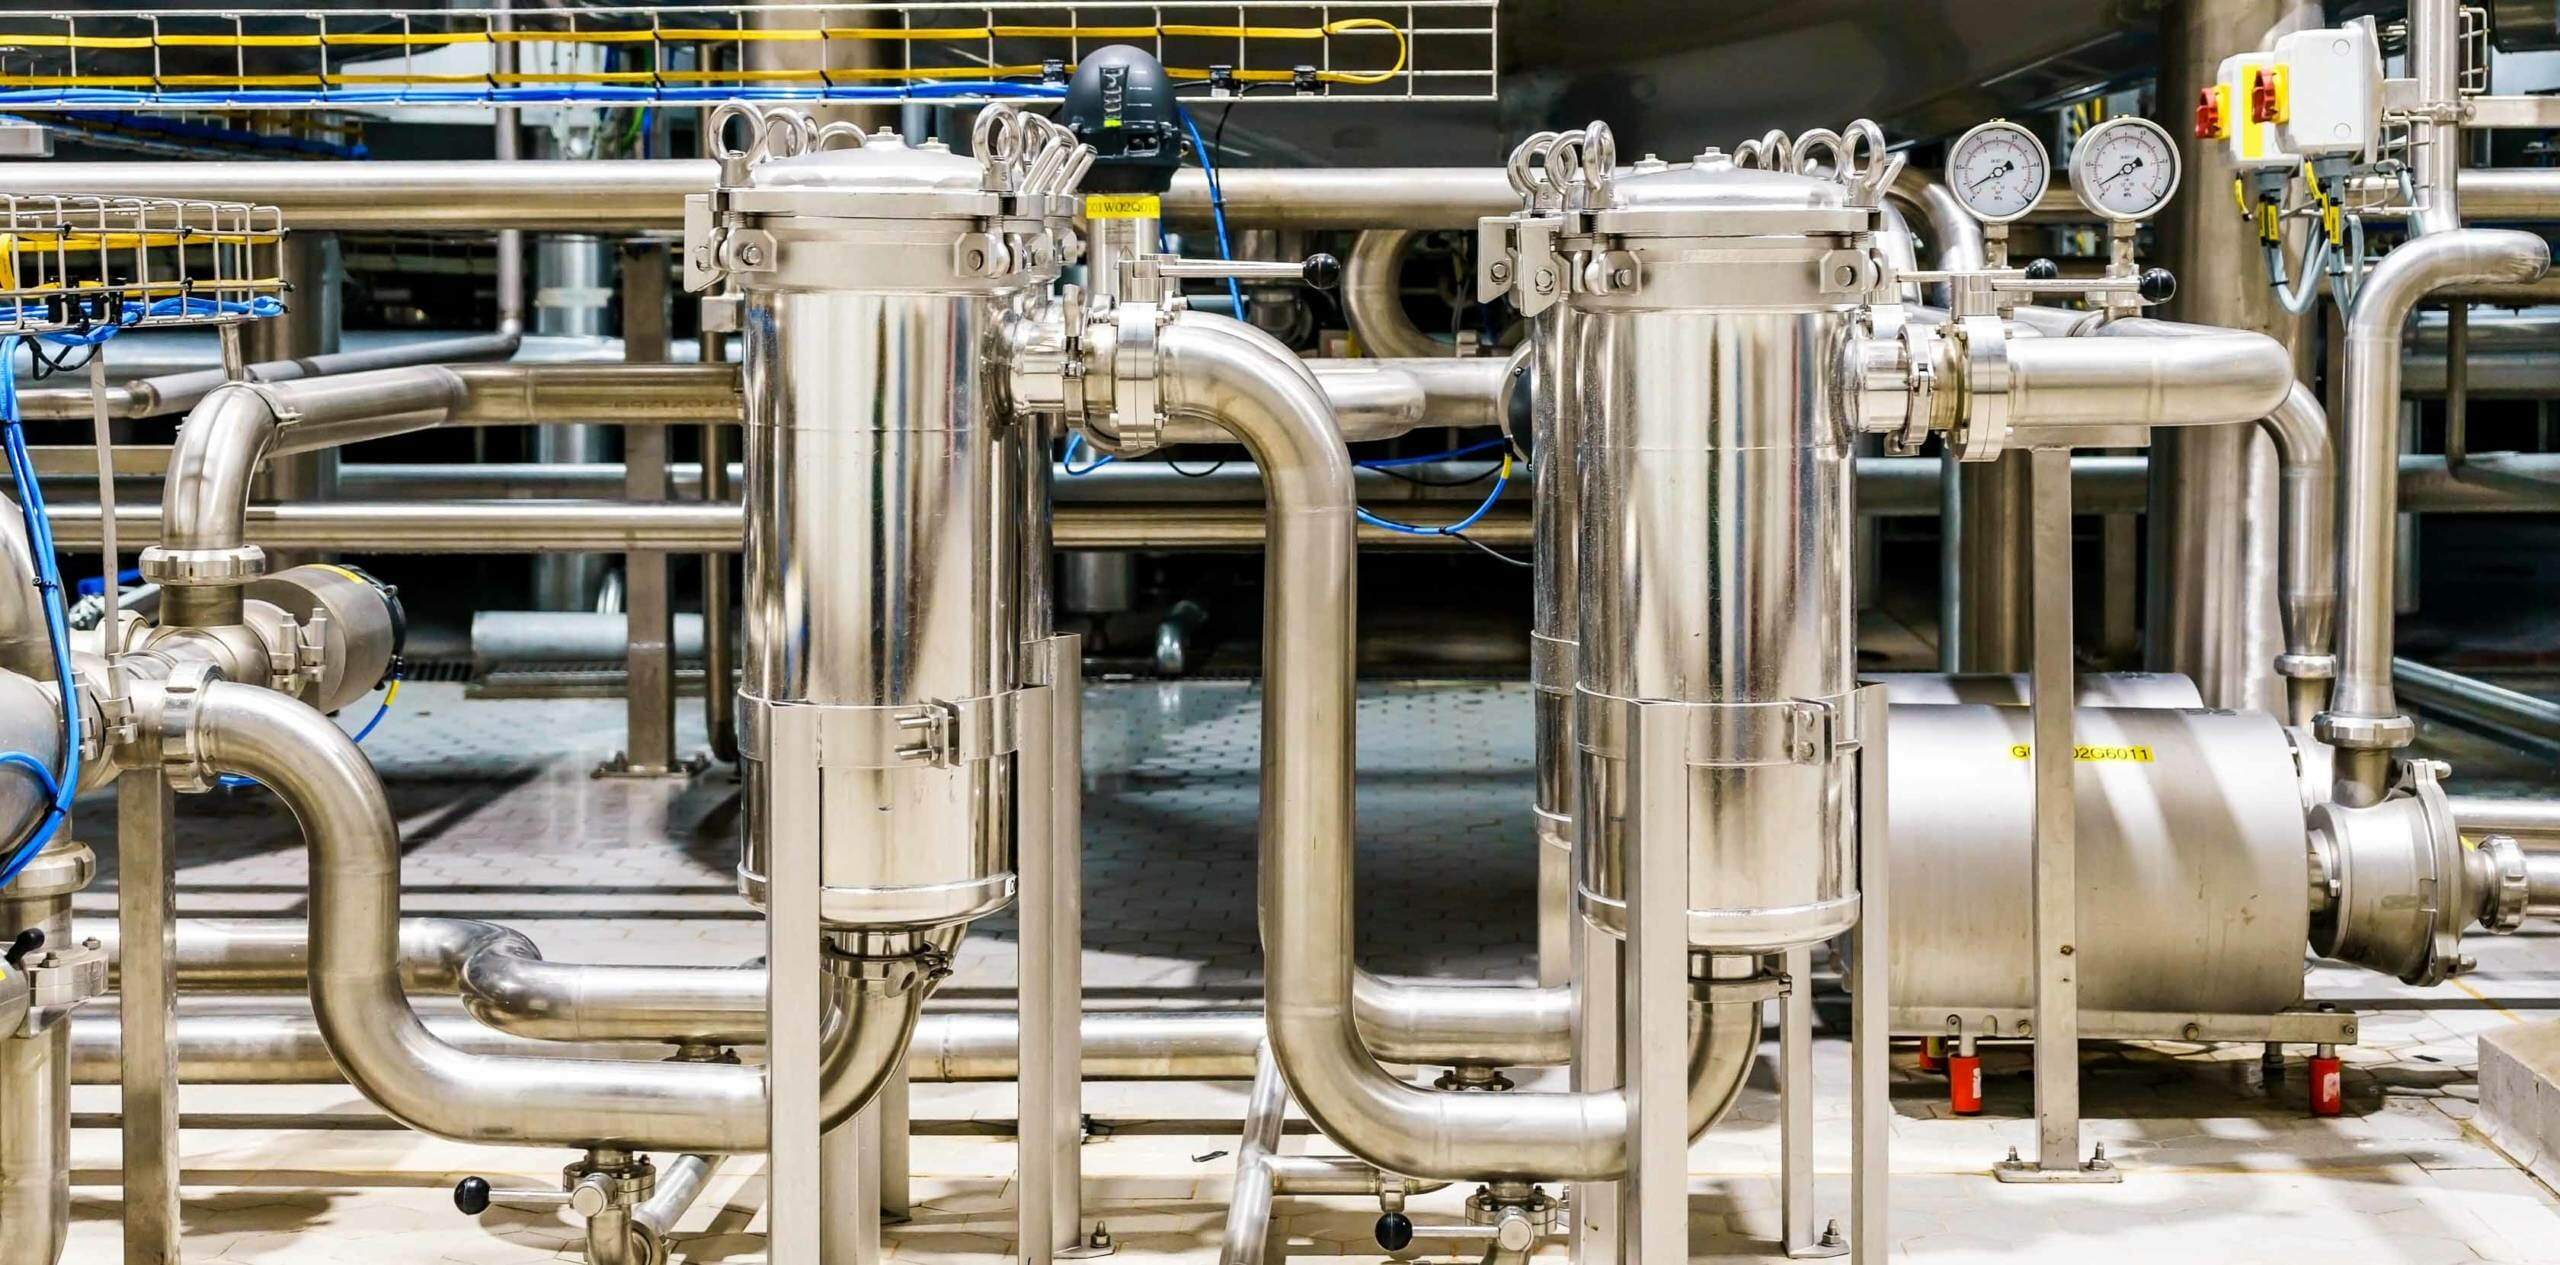 Filtration system in a commercial & industrial setting.